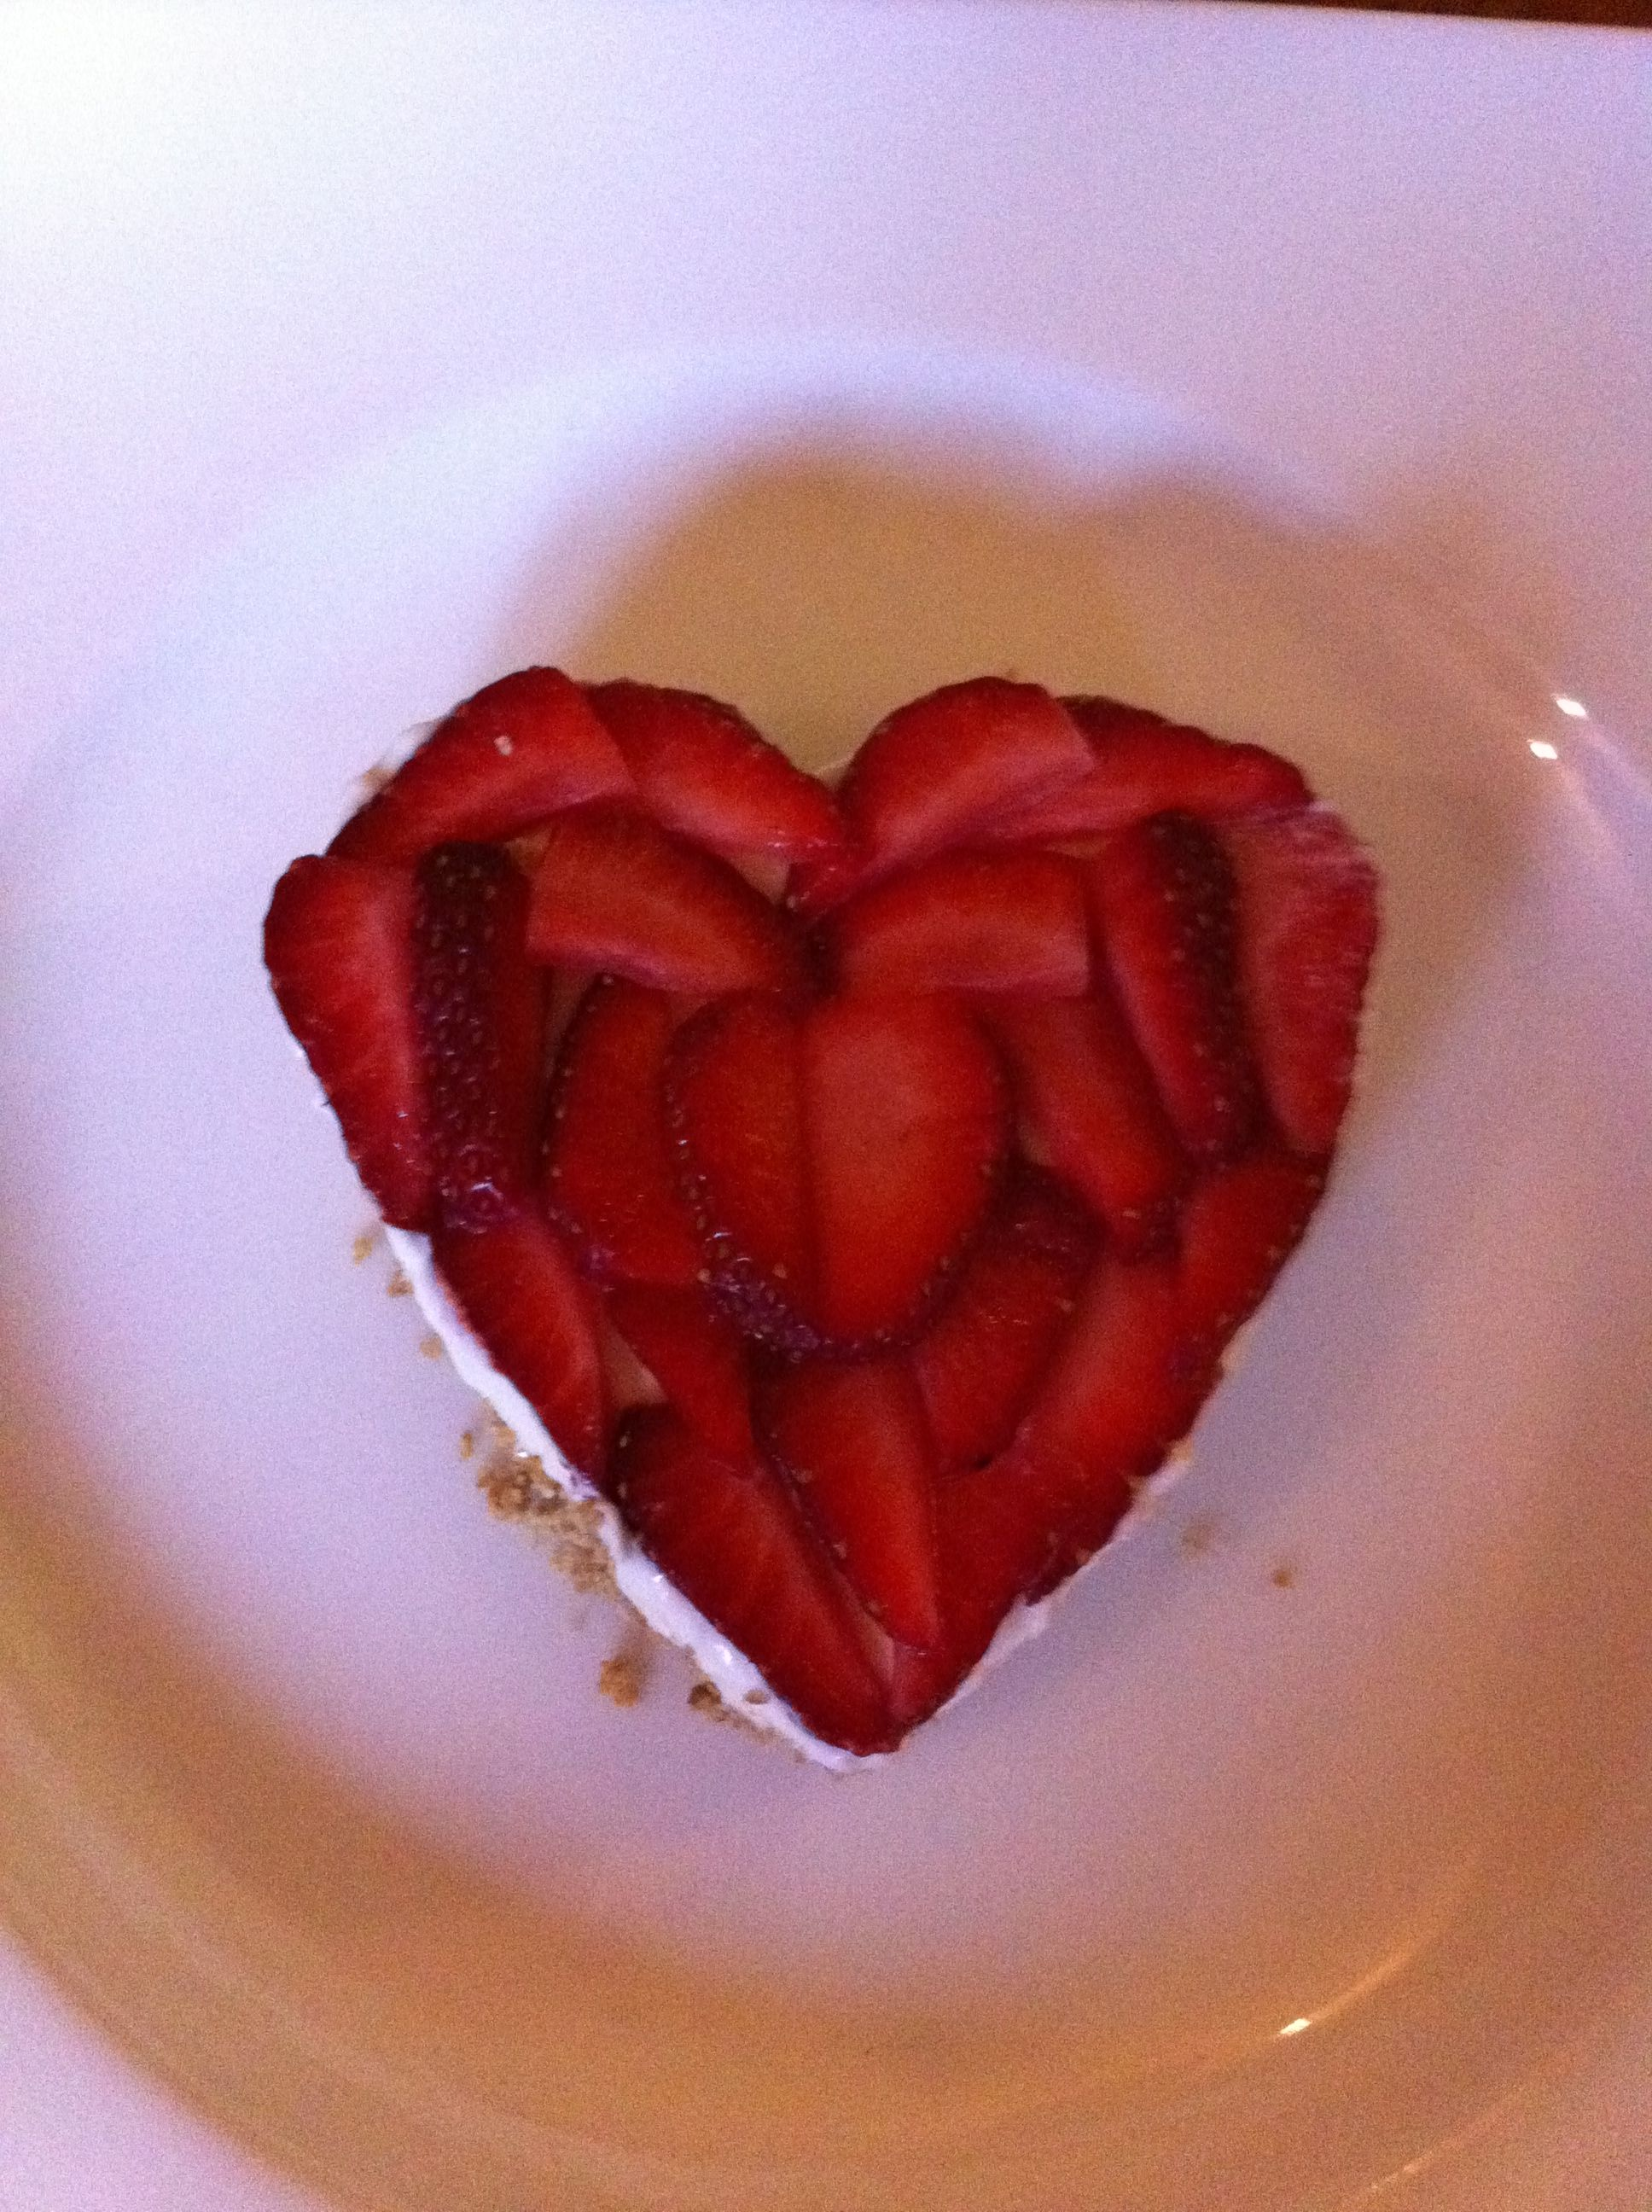 Head Chef Testing Out Valentine Menu At Winder Hall Yummy Strawberry Heart Cheesecake Strawberry Hearts Strawberry Food